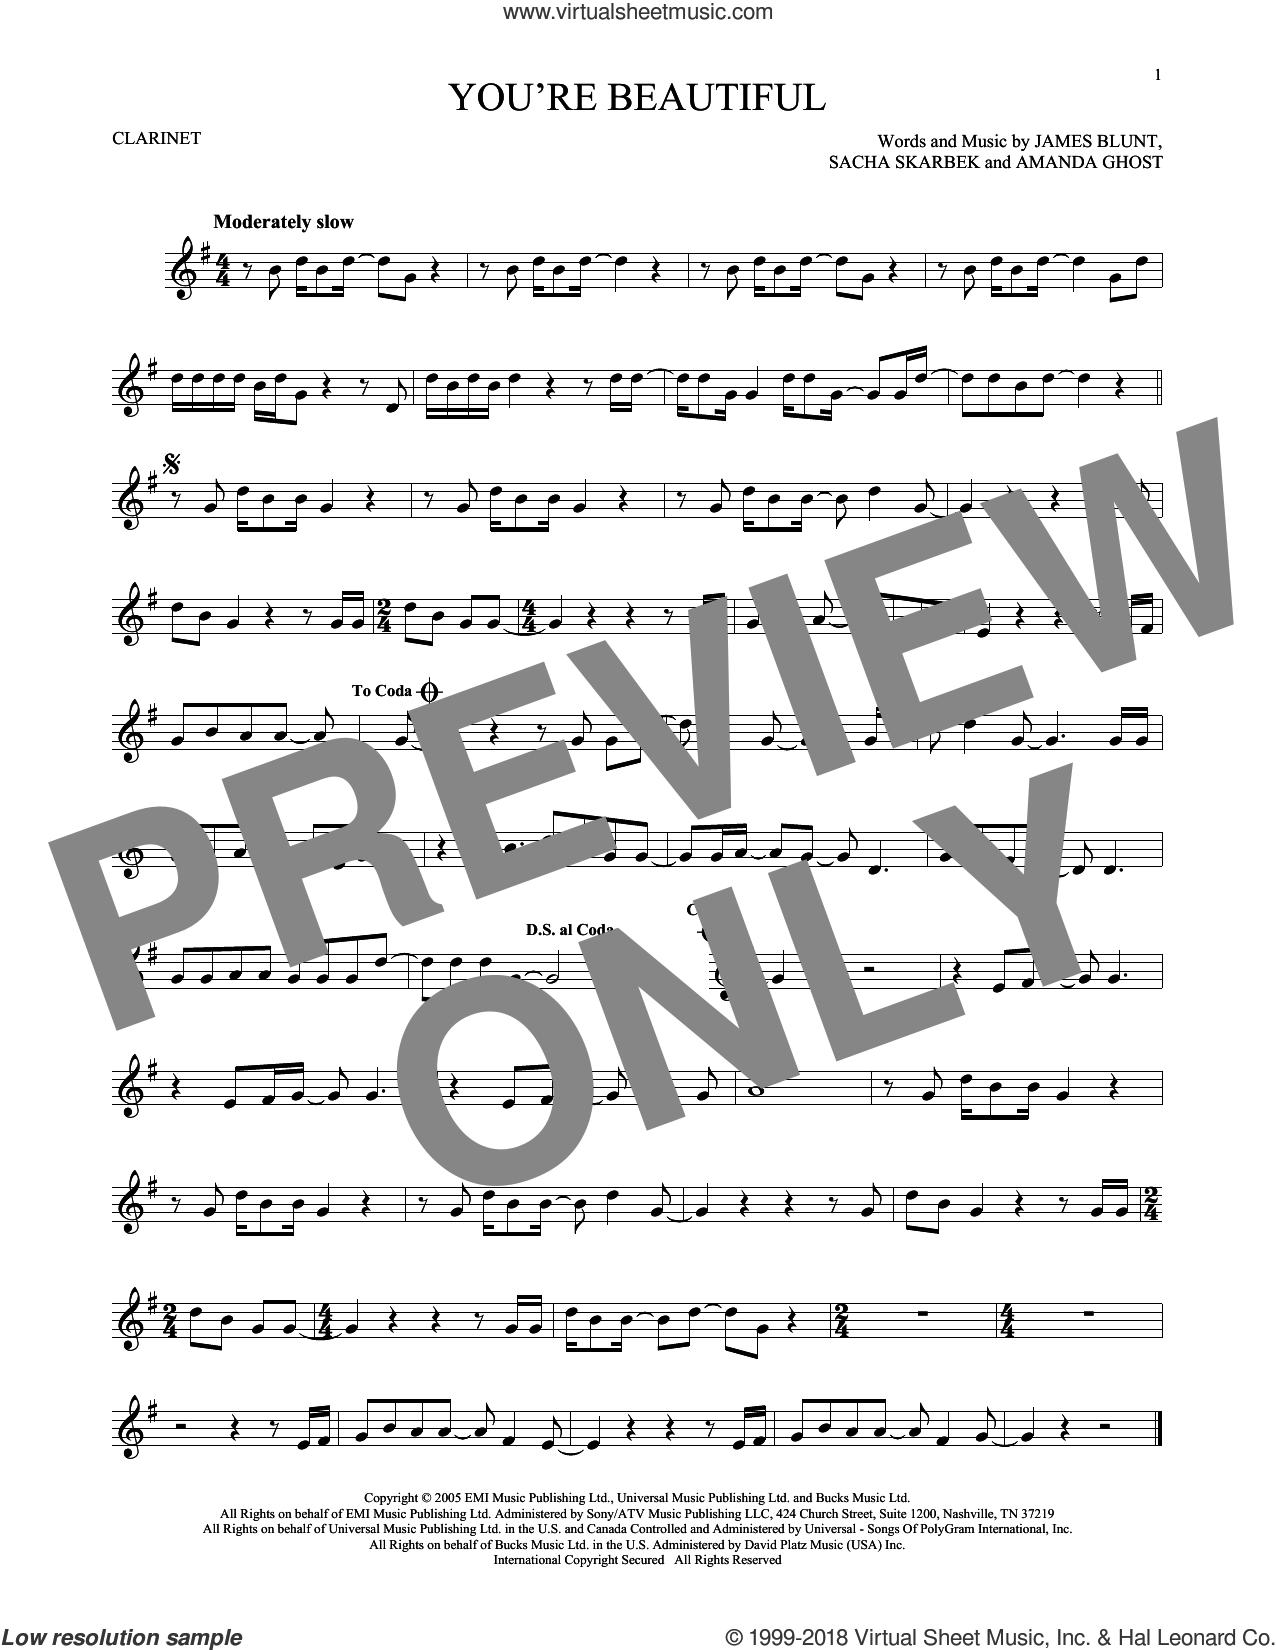 You're Beautiful sheet music for clarinet solo by James Blunt, Amanda Ghost and Sacha Skarbek, intermediate skill level